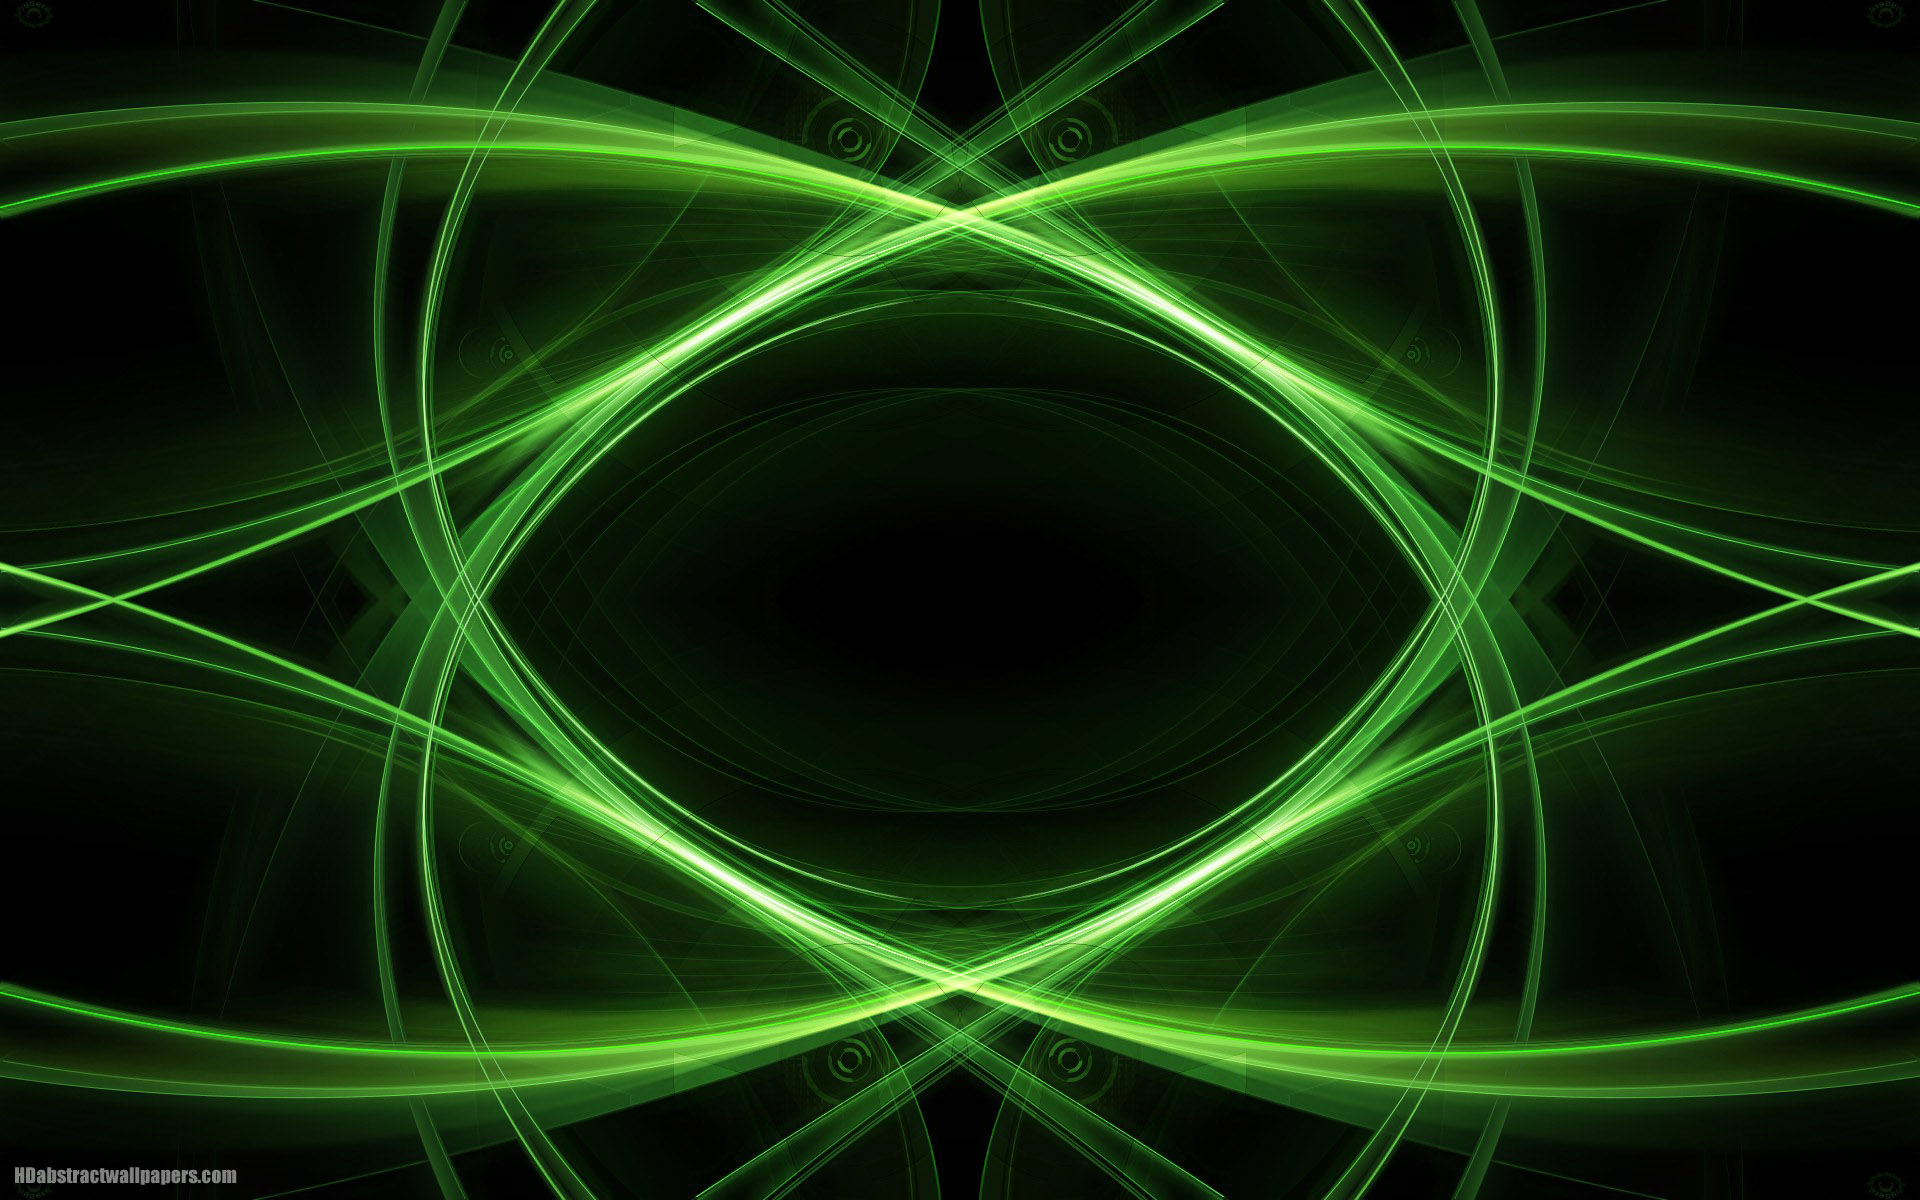 Black abstract wallpaper with green lines hd abstract wallpapers black abstract wallpaper with green lines voltagebd Image collections